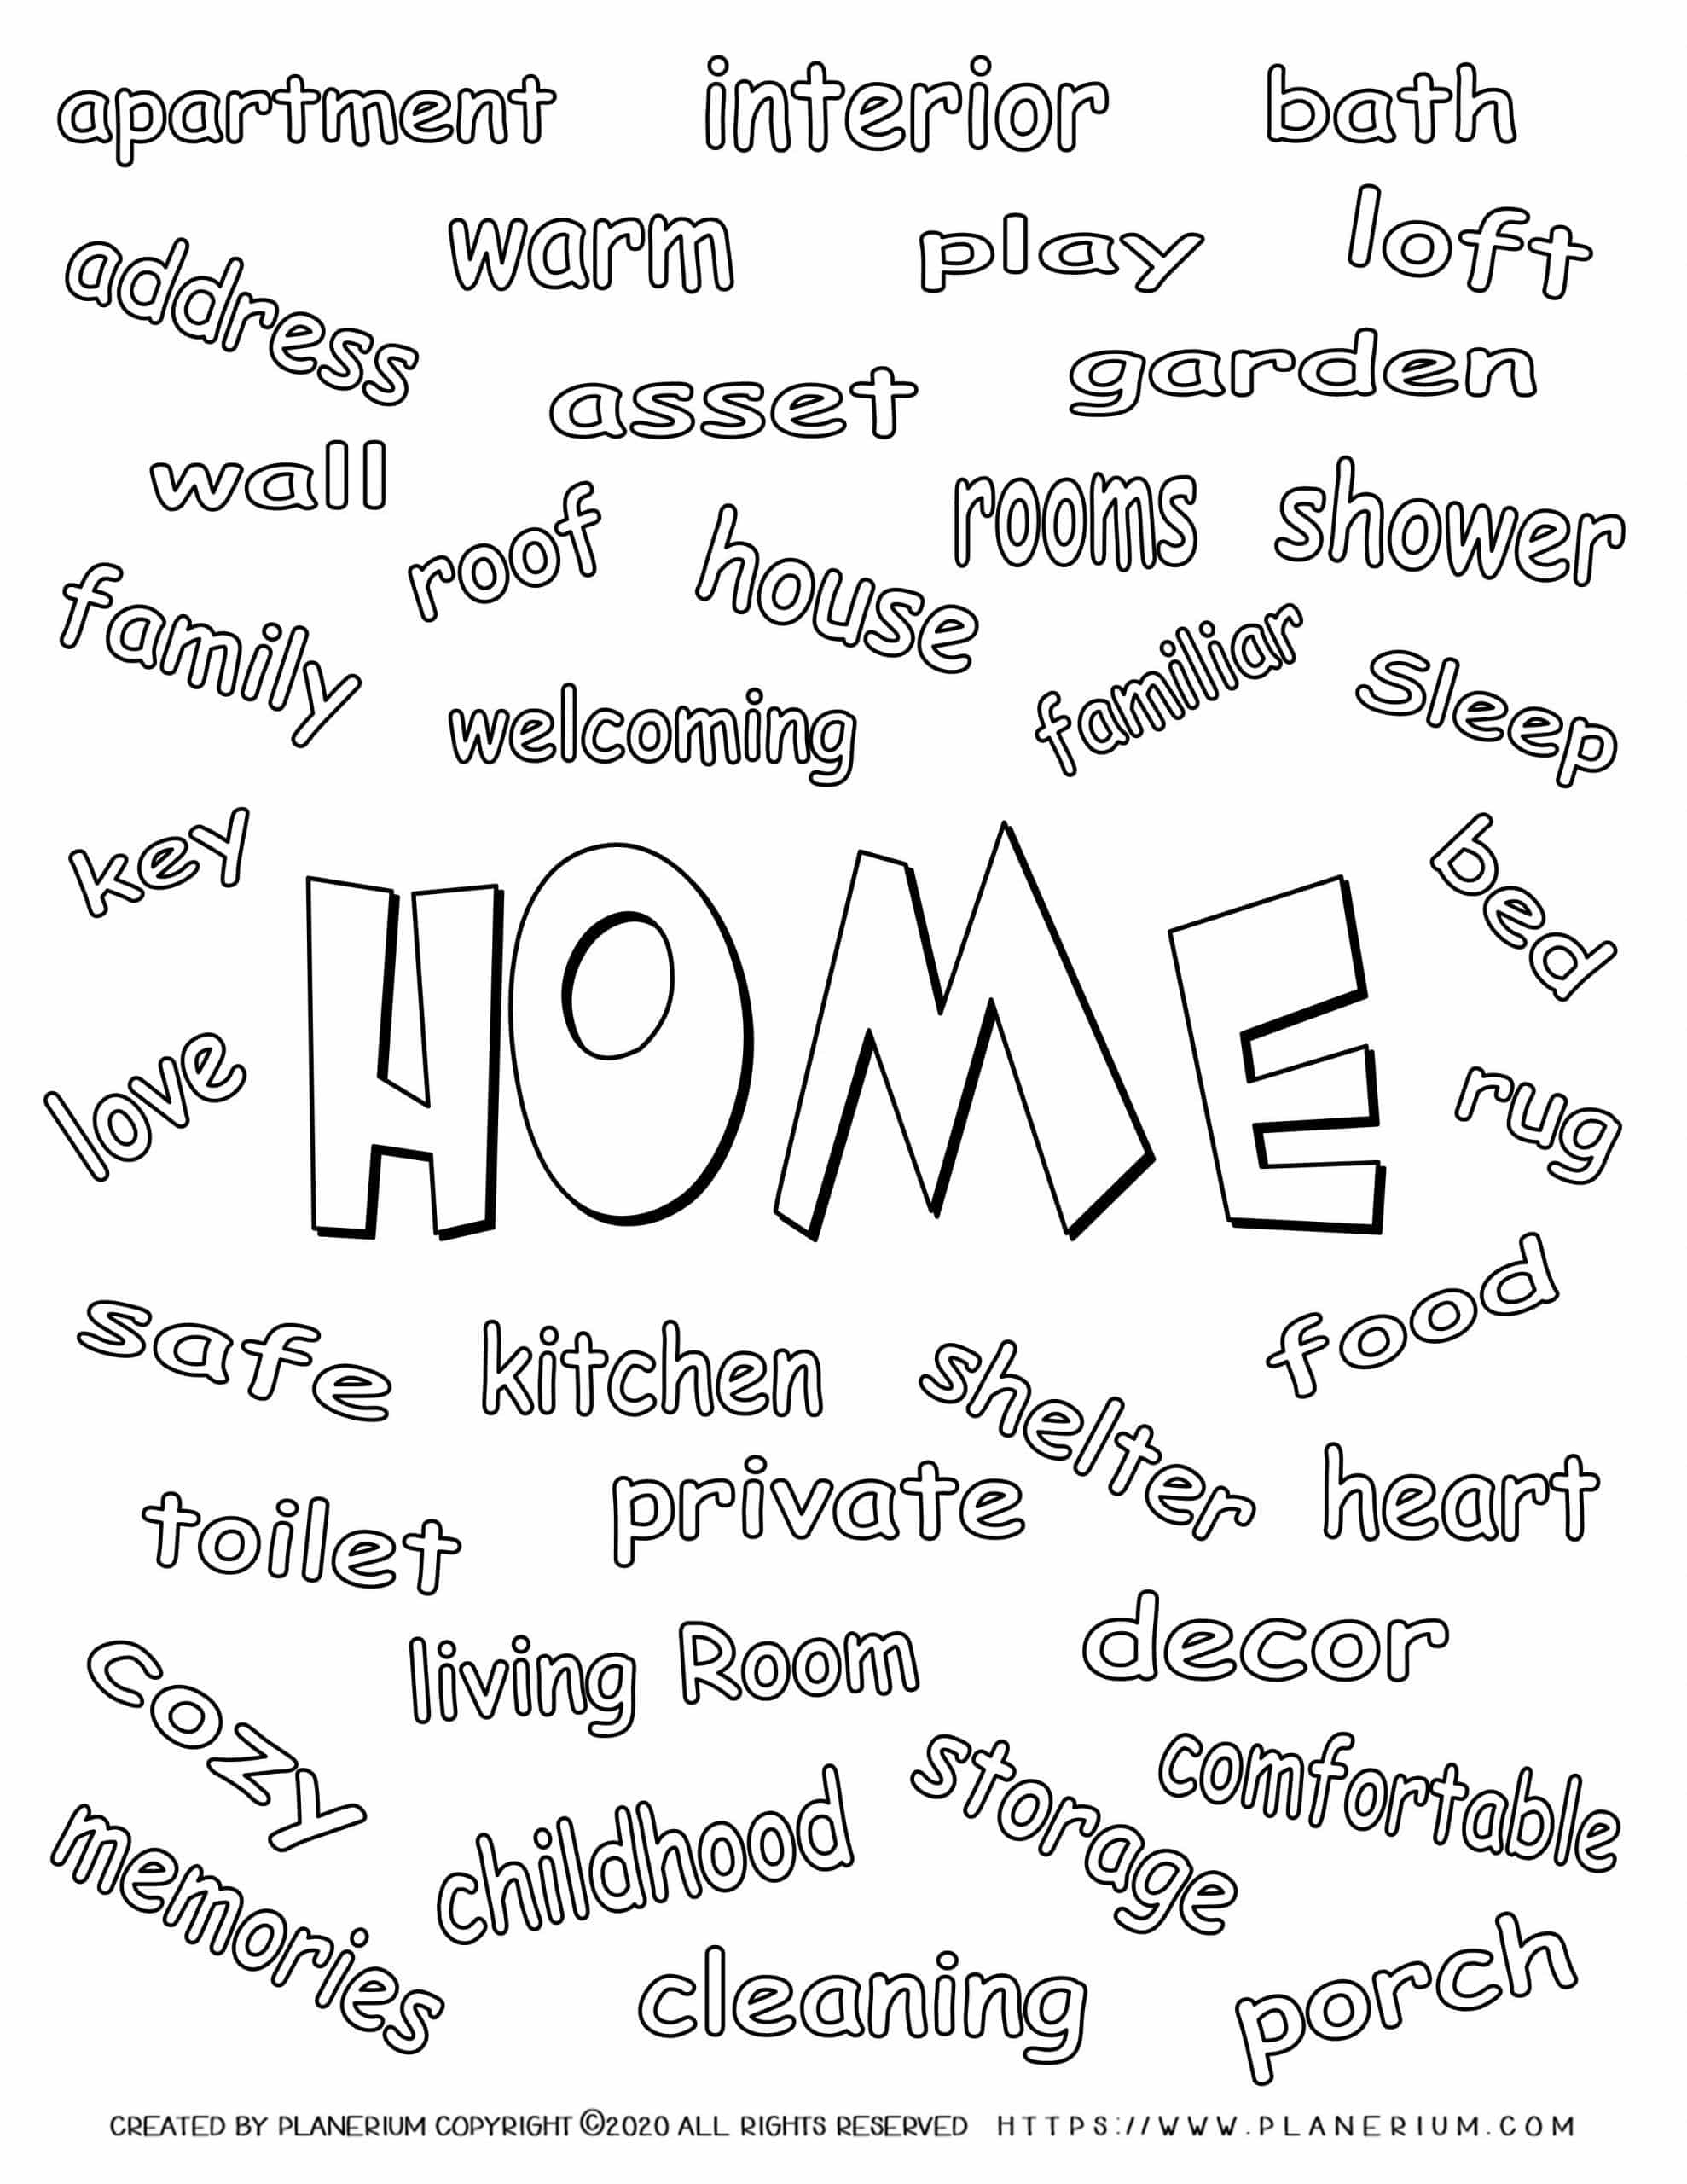 My Home - Coloring Page - Related Words